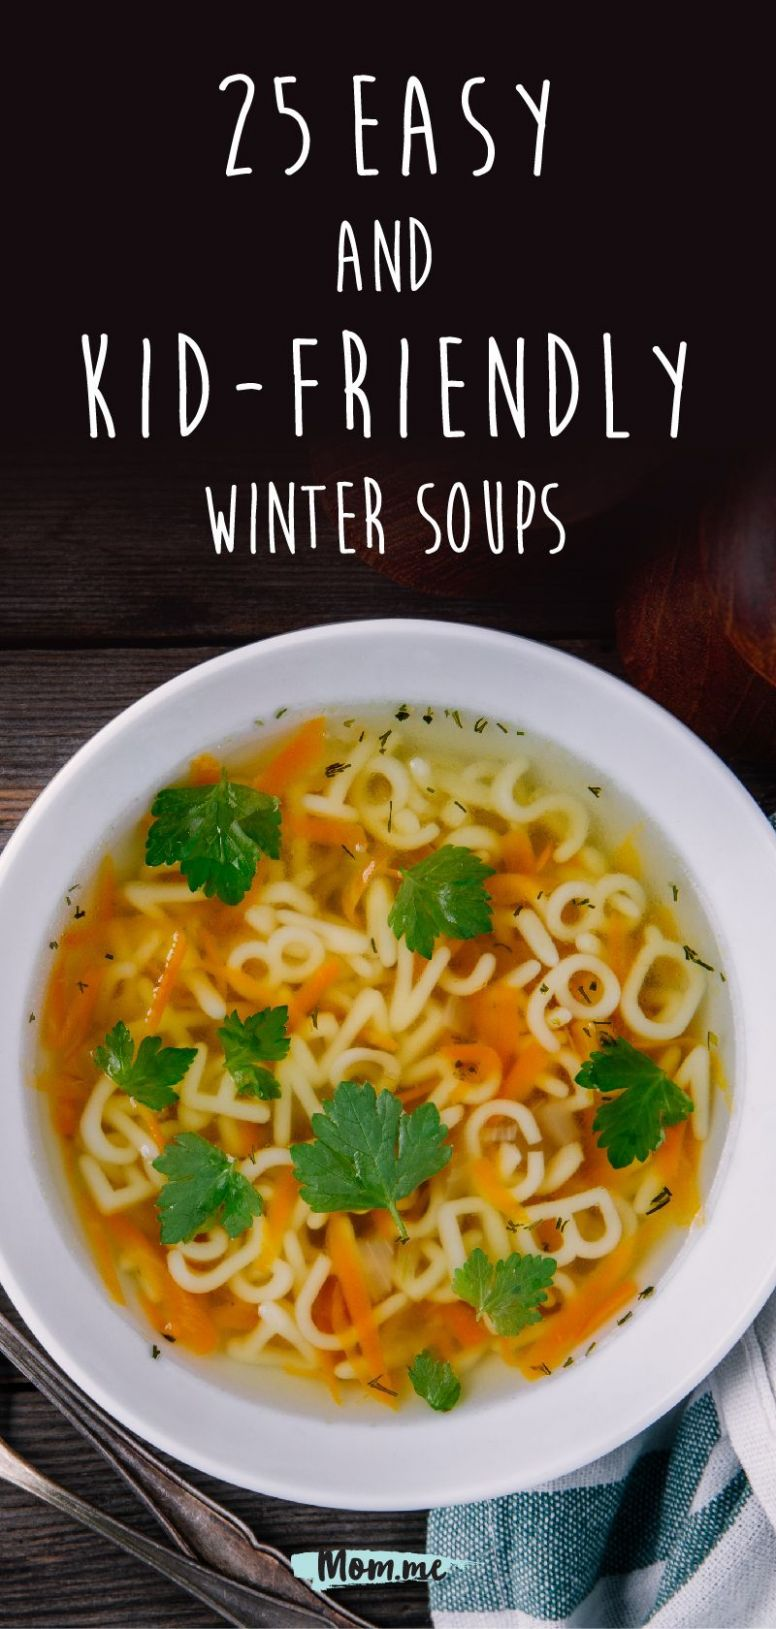 Easy and Kid-Friendly Winter Soups in 8 | Soup recipes, Cooking ..